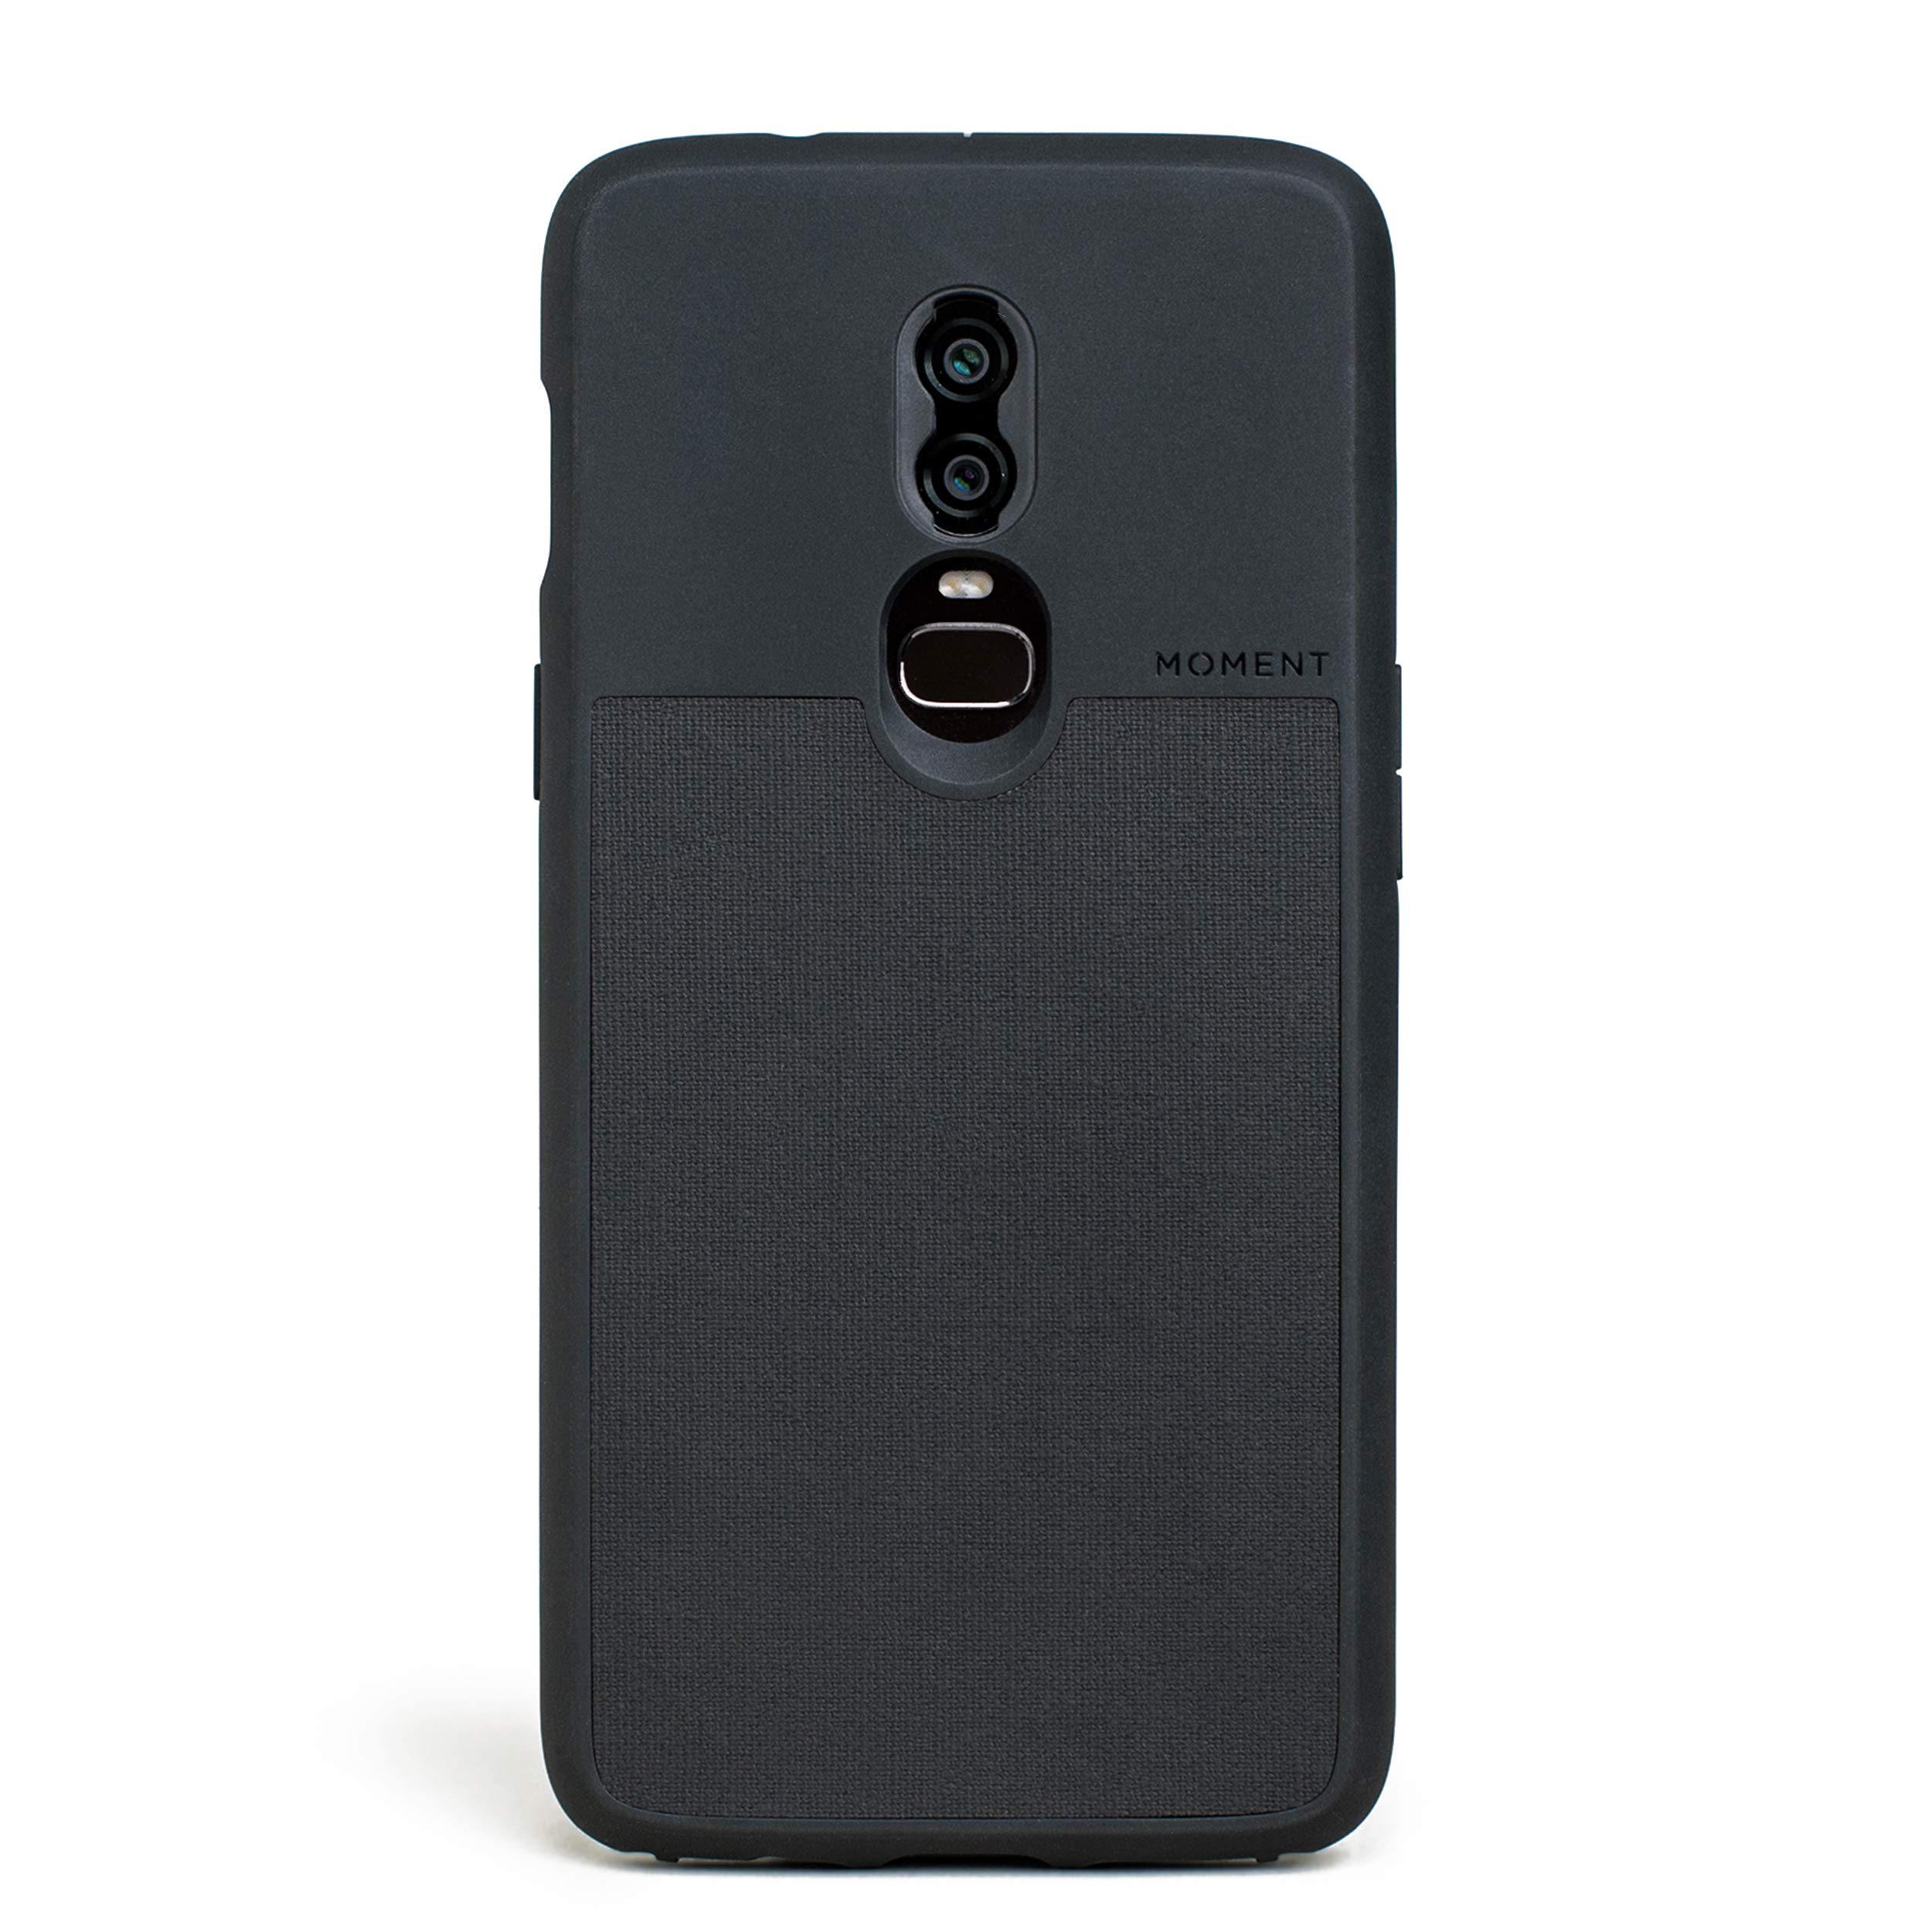 ویکالا · خرید  اصل اورجینال · خرید از آمازون · OnePlus 6 Case || Moment Photo Case in Black Canvas - Thin, Protective, Wrist Strap Friendly case for Camera Lovers. wekala · ویکالا